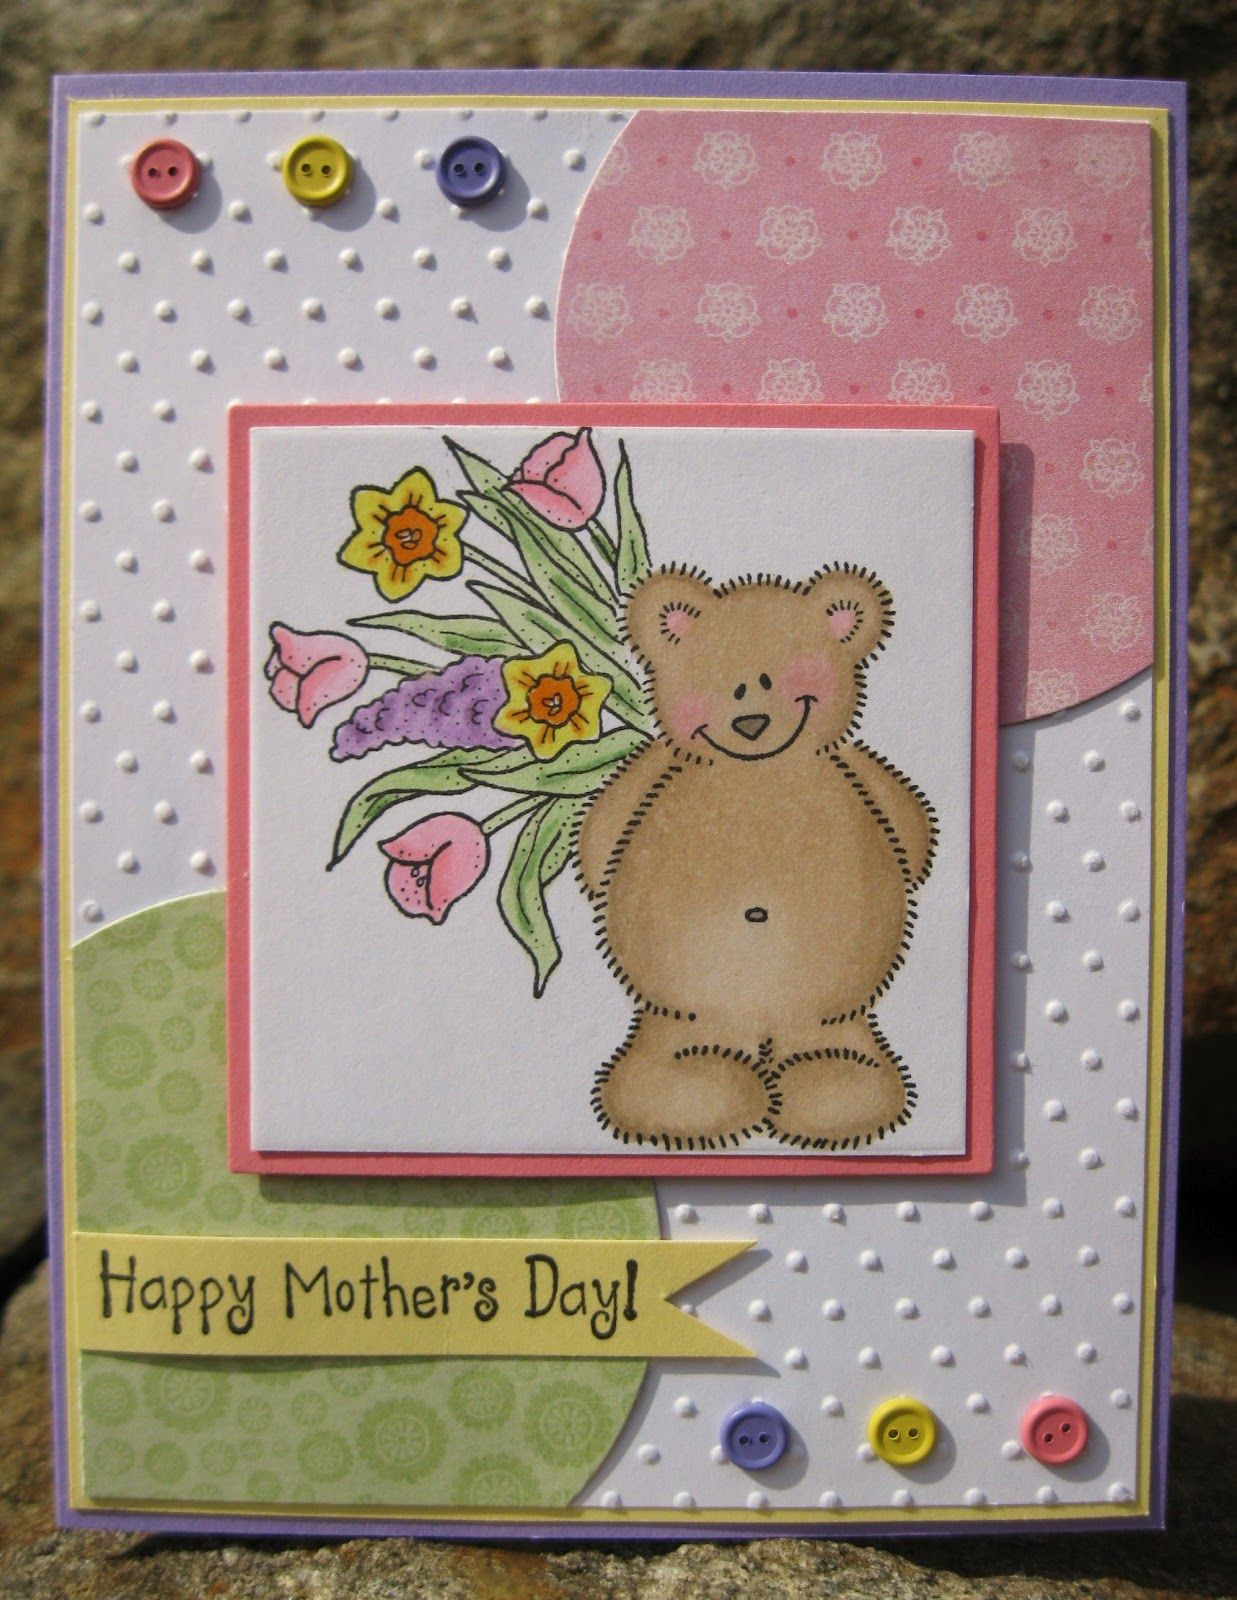 Ahh how cute is this this adorable handmade motherus day card